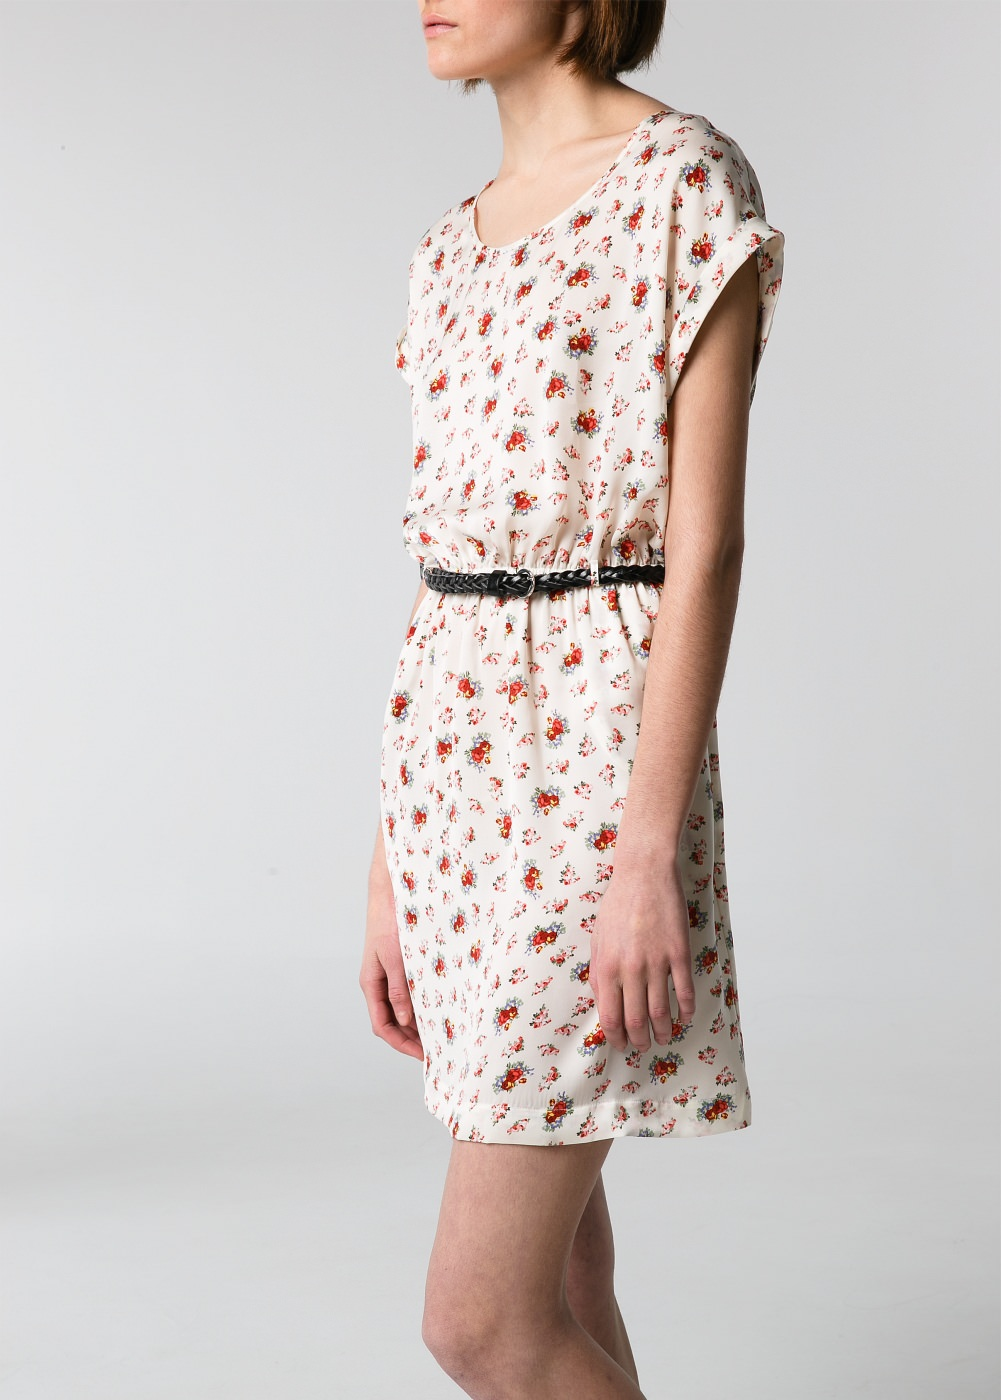 Belted printed dress -  							Dresses - 							Women - 							MANGO